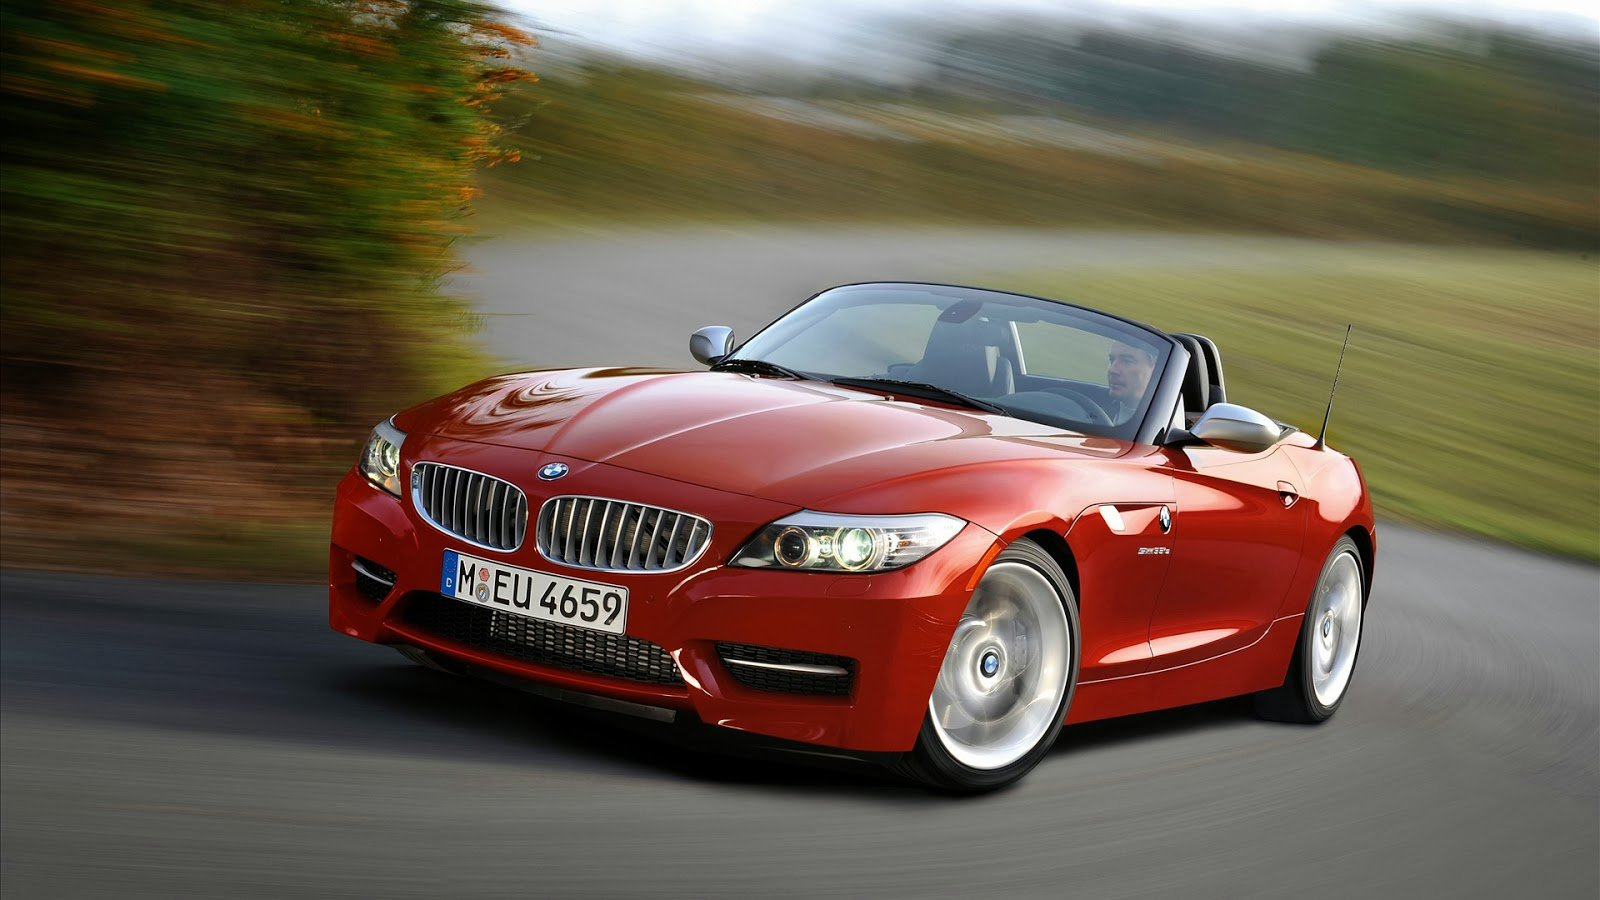 New Hd Bmw Car Wallpapers 1080P Mobile Wallpapers On This Month